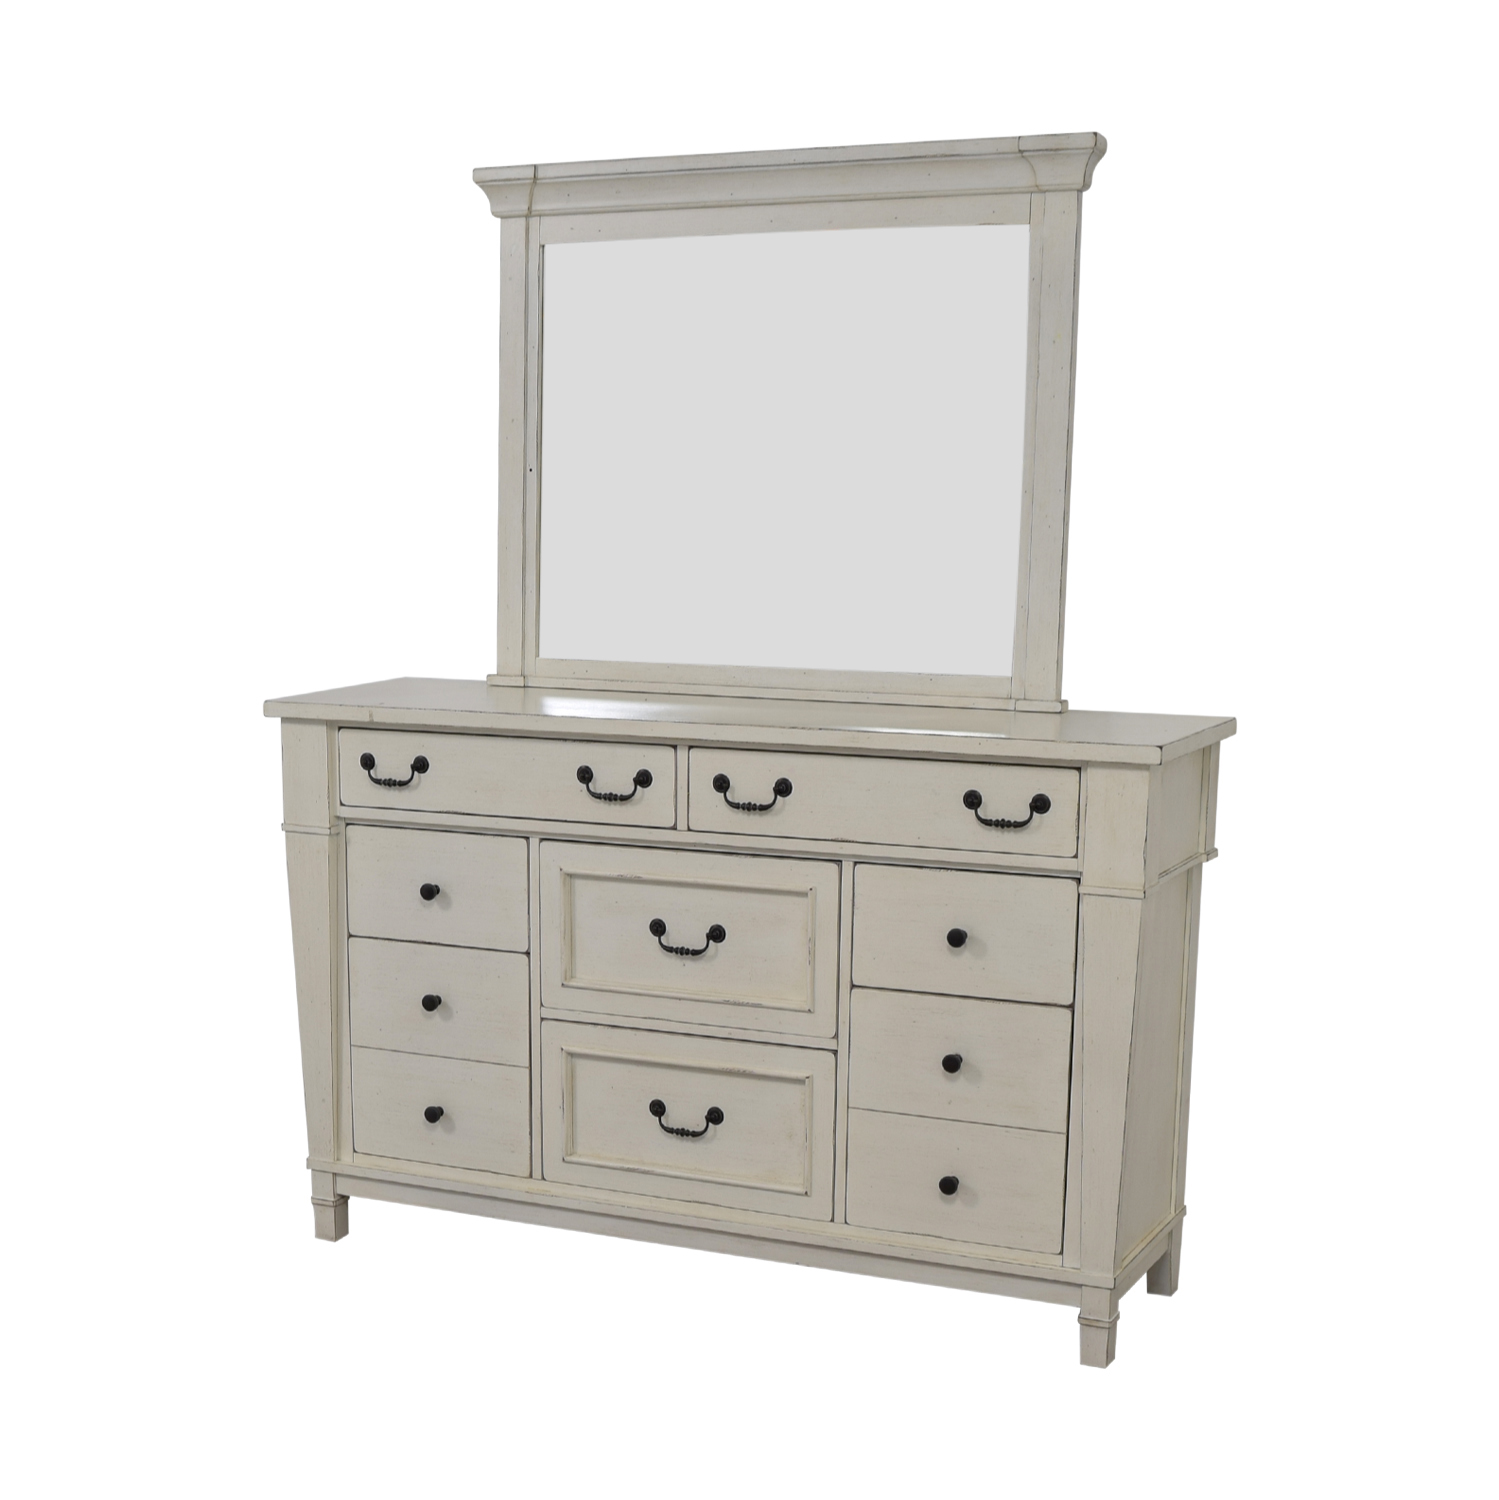 49 off kaiser furniture kaiser furniture white eight drawer dresser and mirror storage. Black Bedroom Furniture Sets. Home Design Ideas